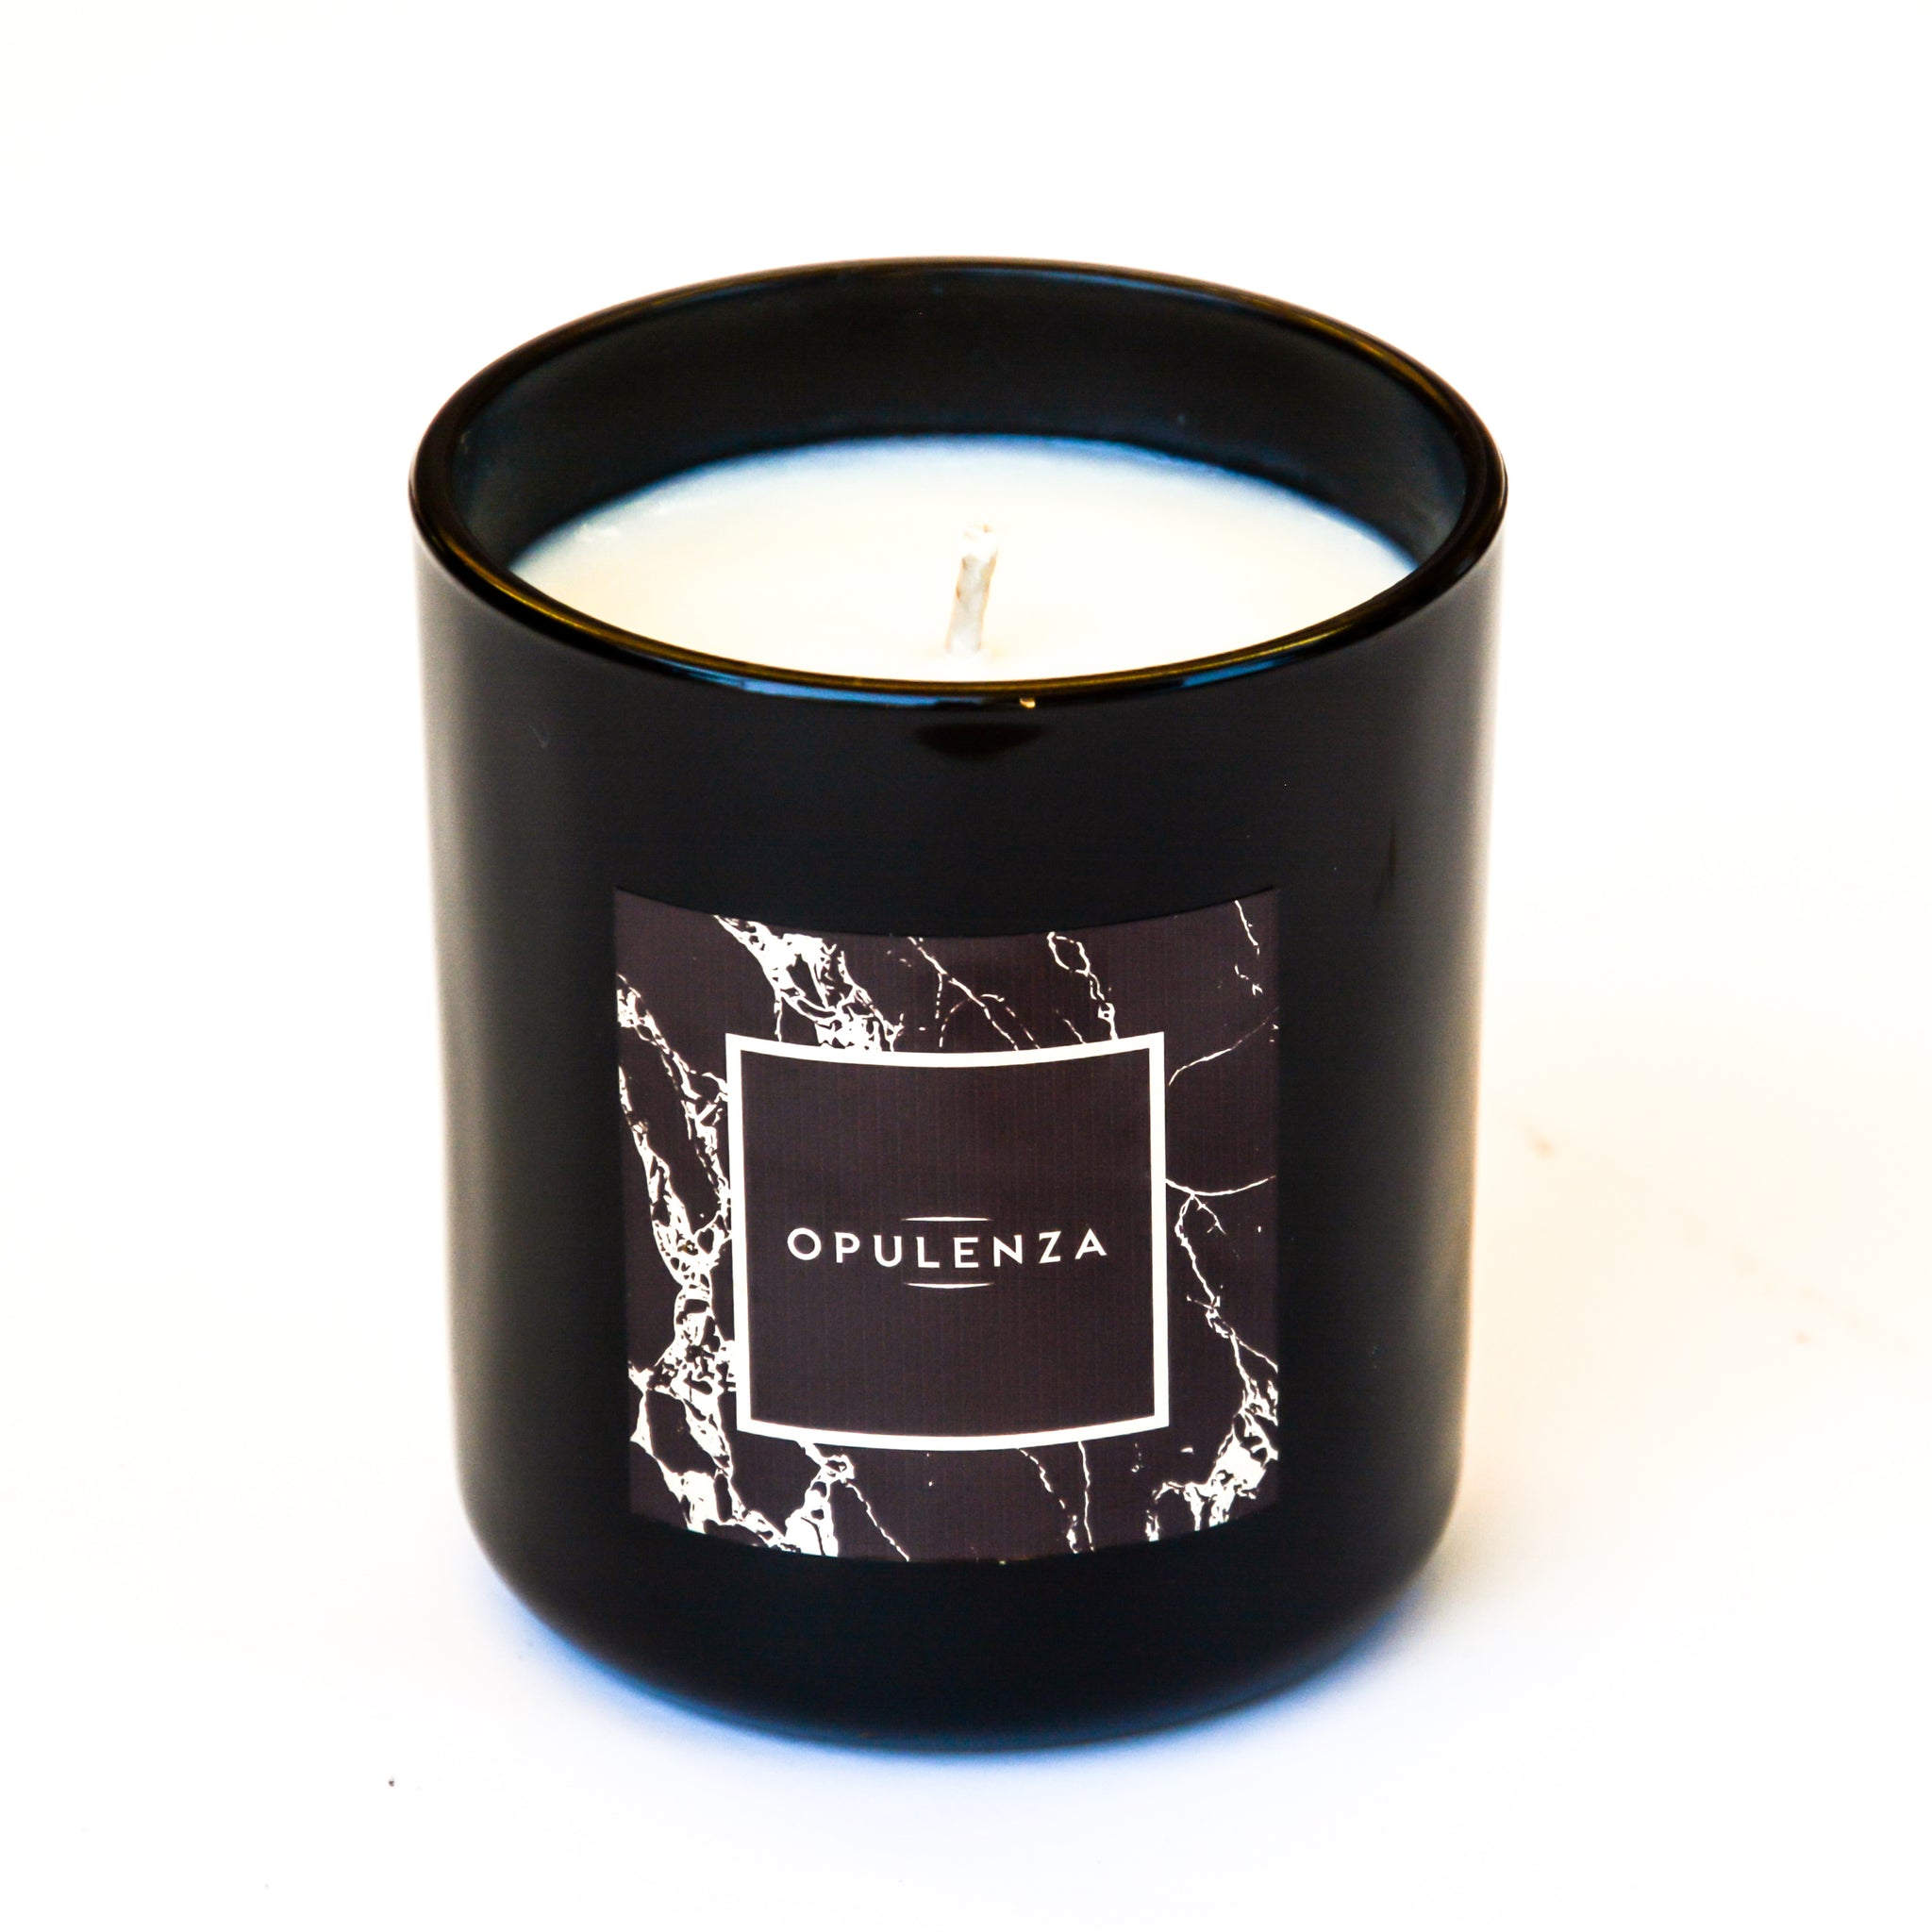 Autumn Soy Wax Scented Candle